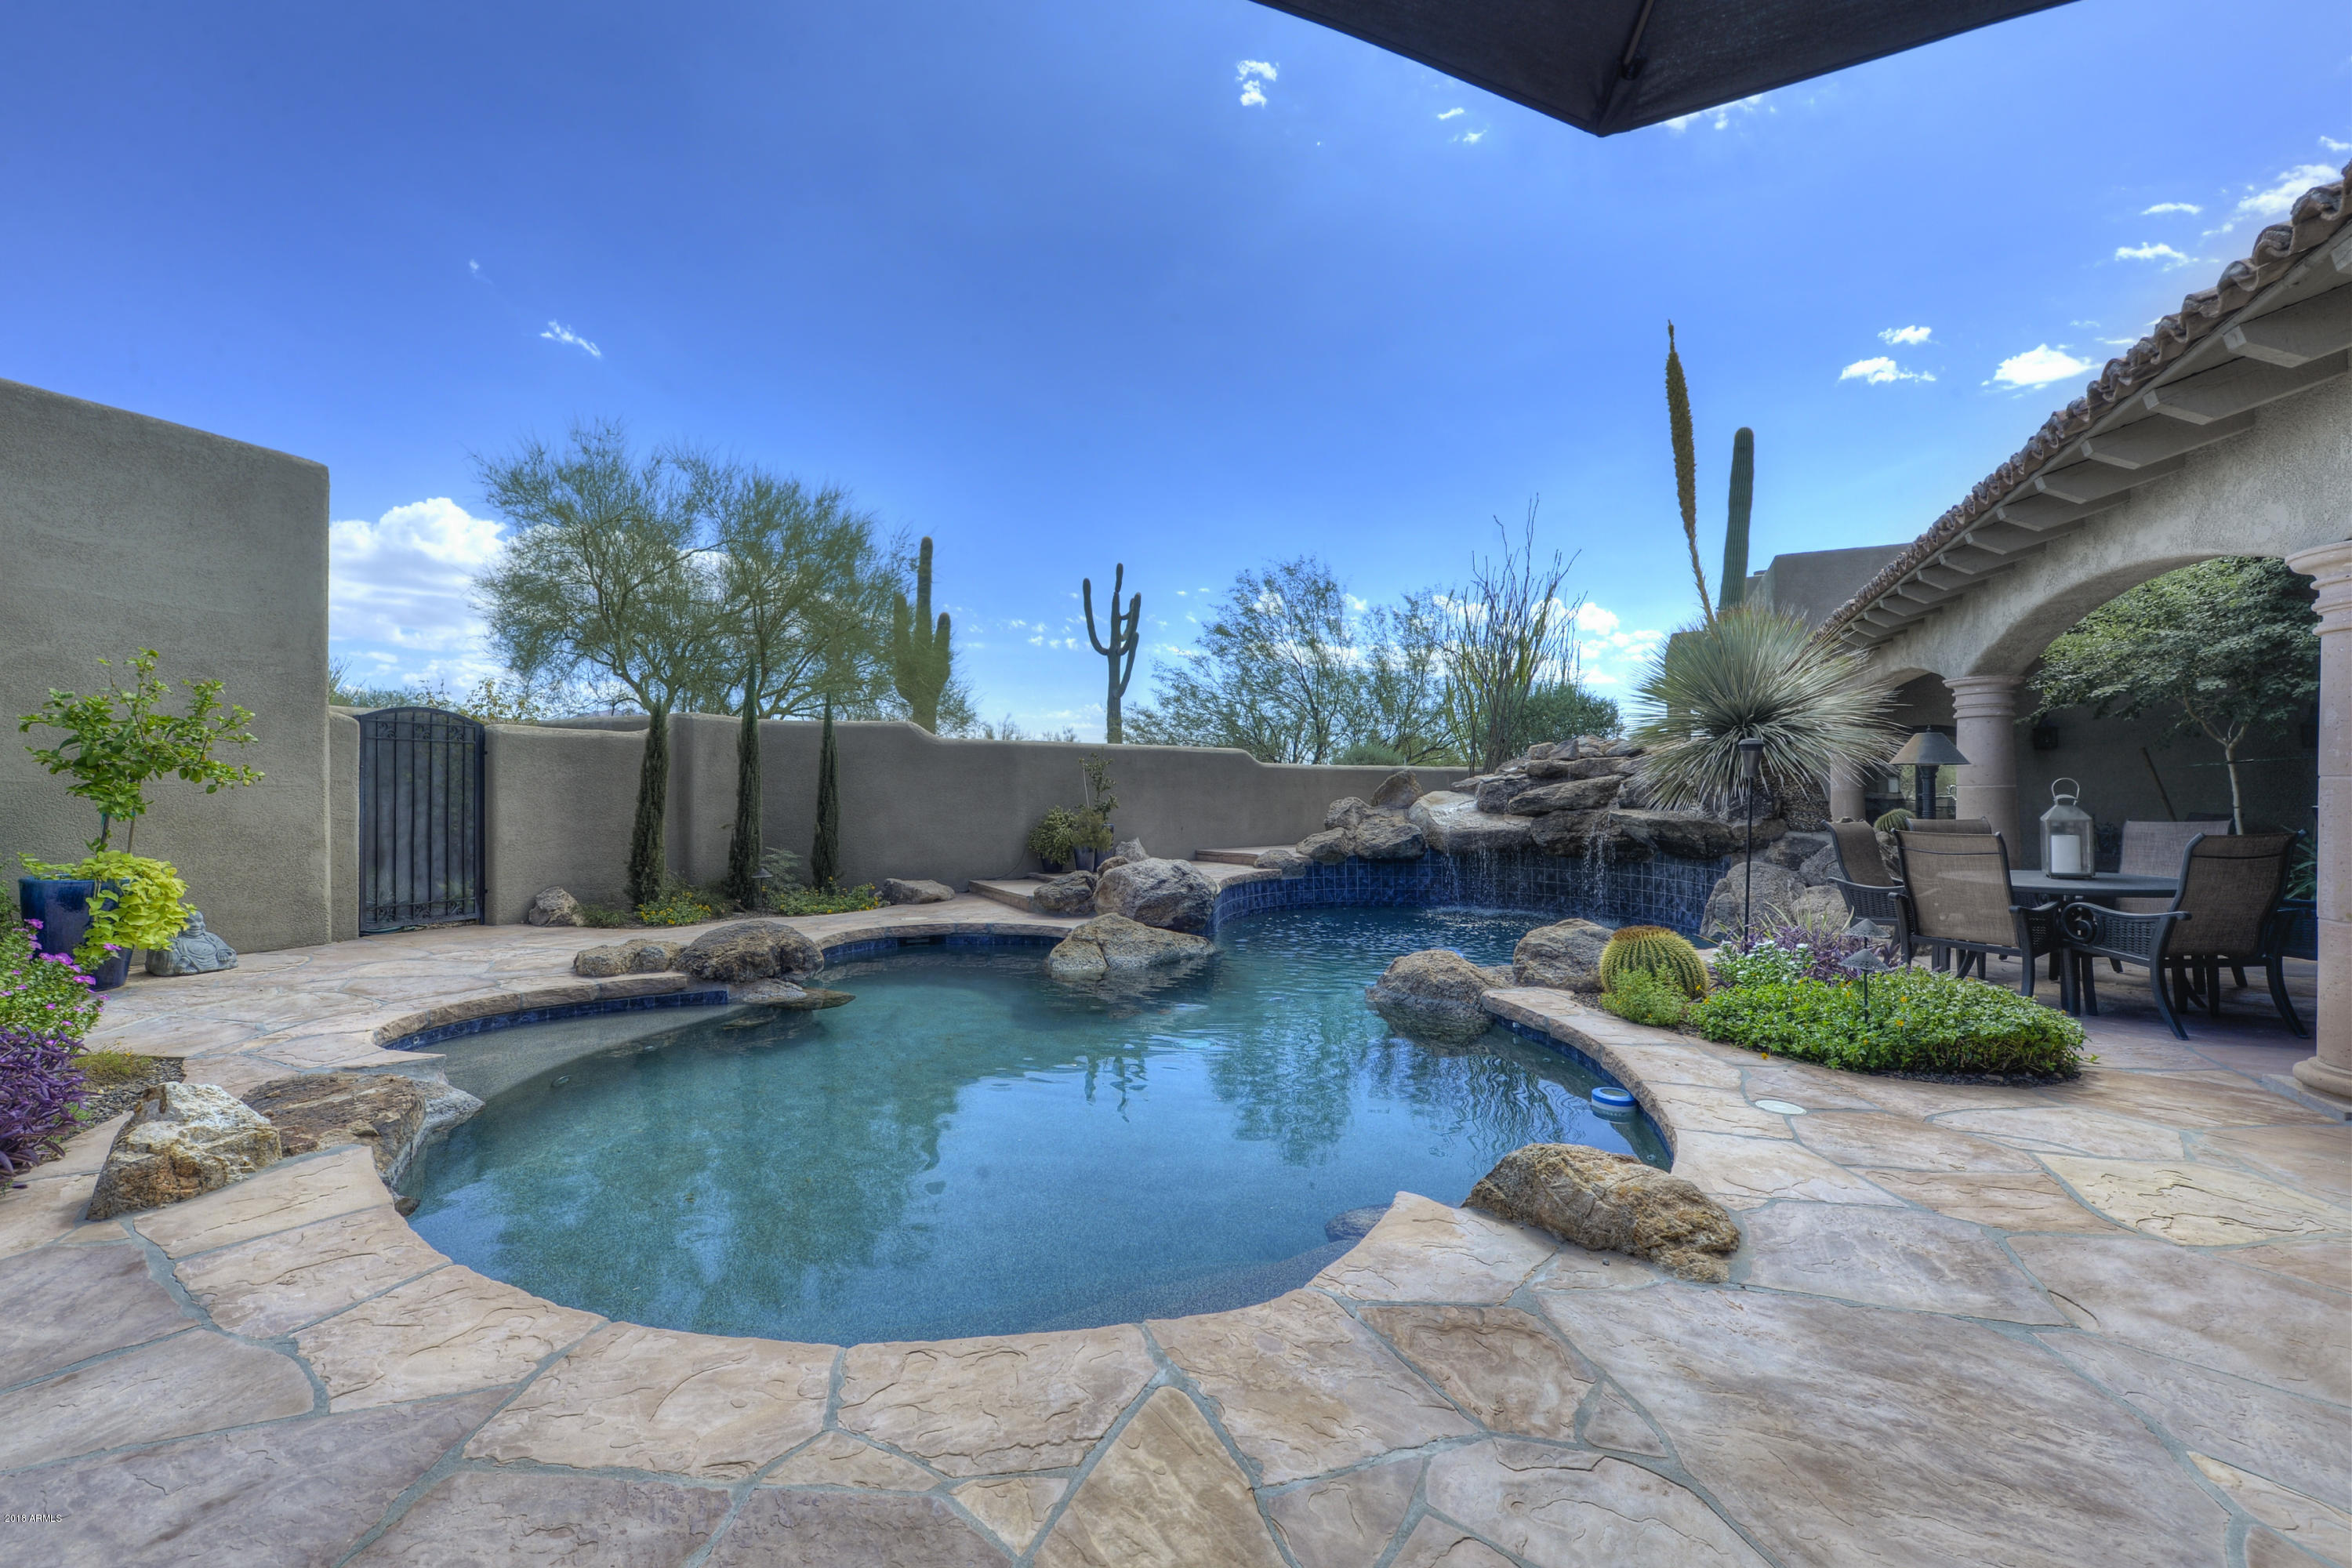 MLS 5827279 10040 E HAPPY VALLEY Road Unit 387, Scottsdale, AZ 85255 Scottsdale AZ Desert Highlands